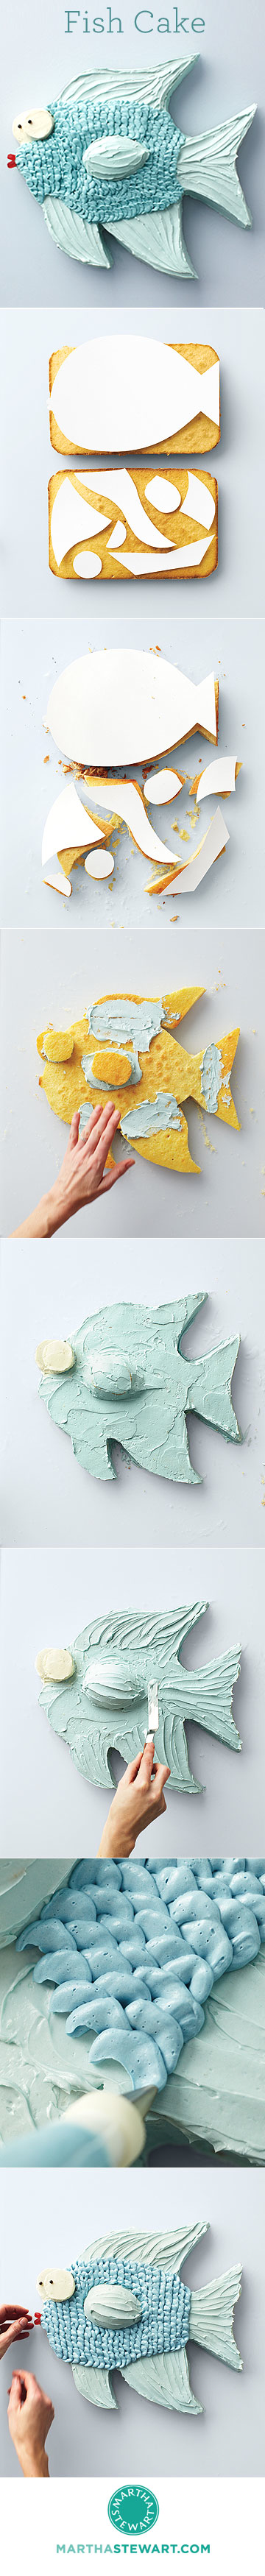 Fish Cake How-To